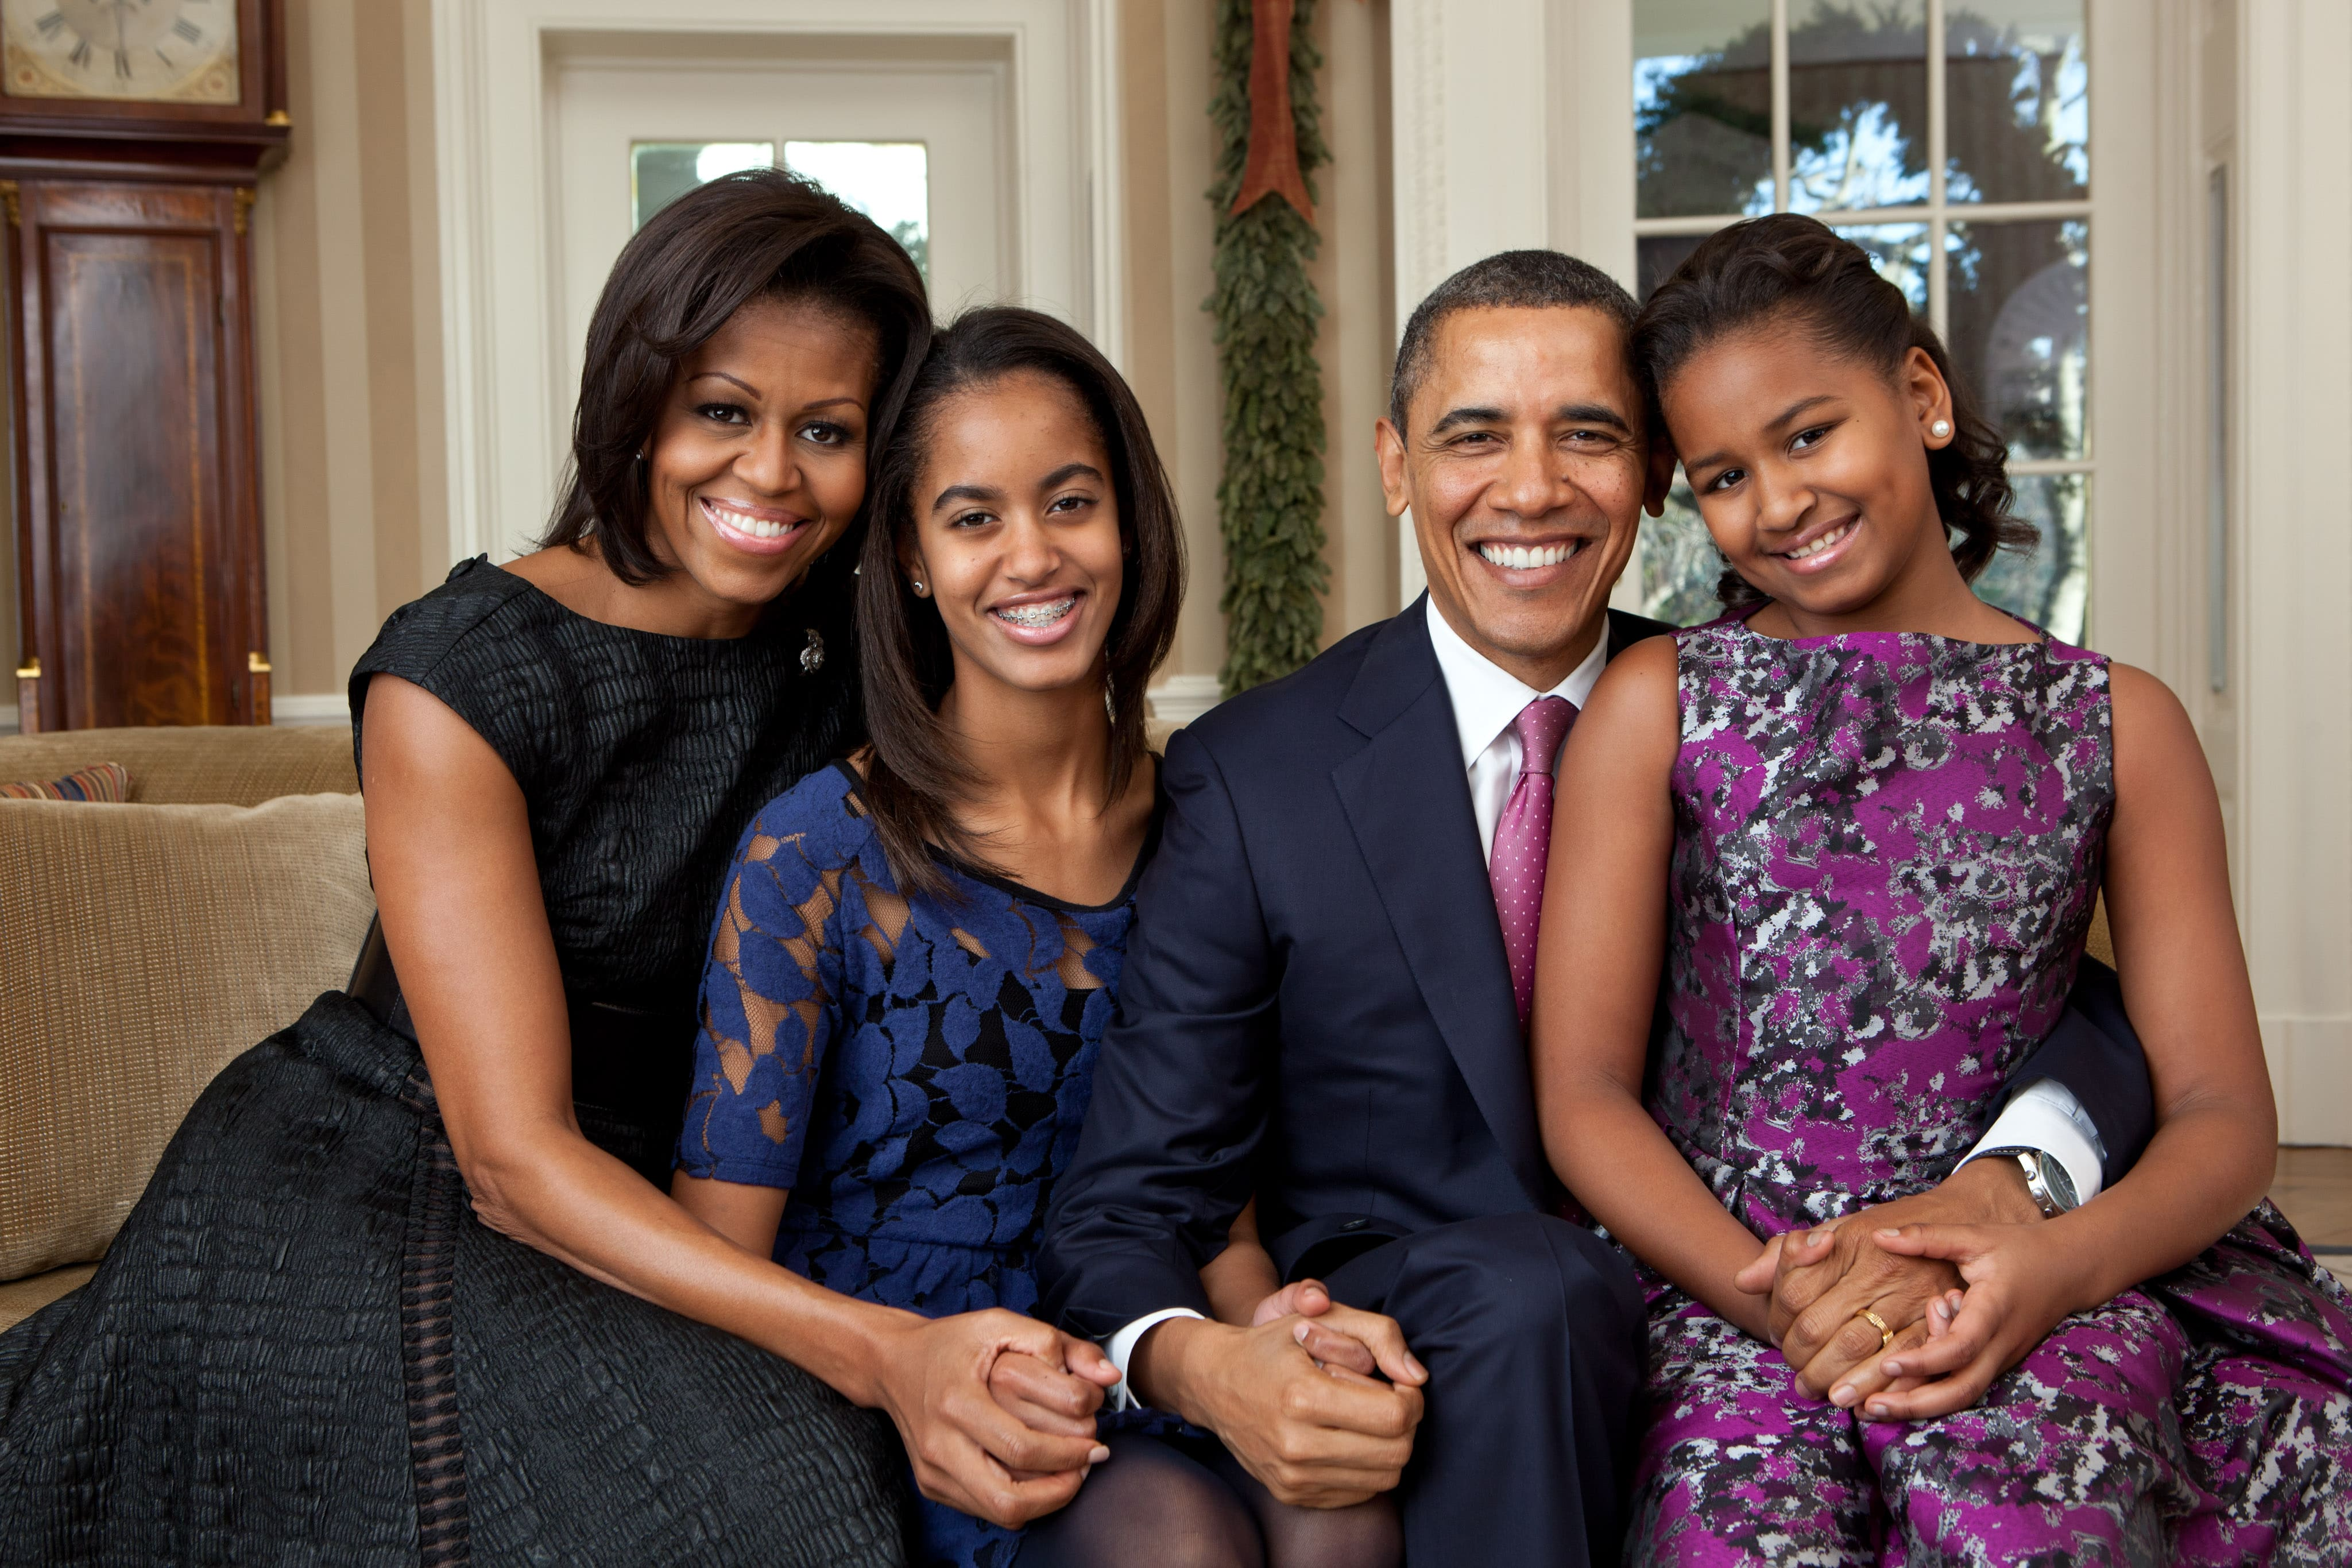 President Obama regrets not spending more time with his mother